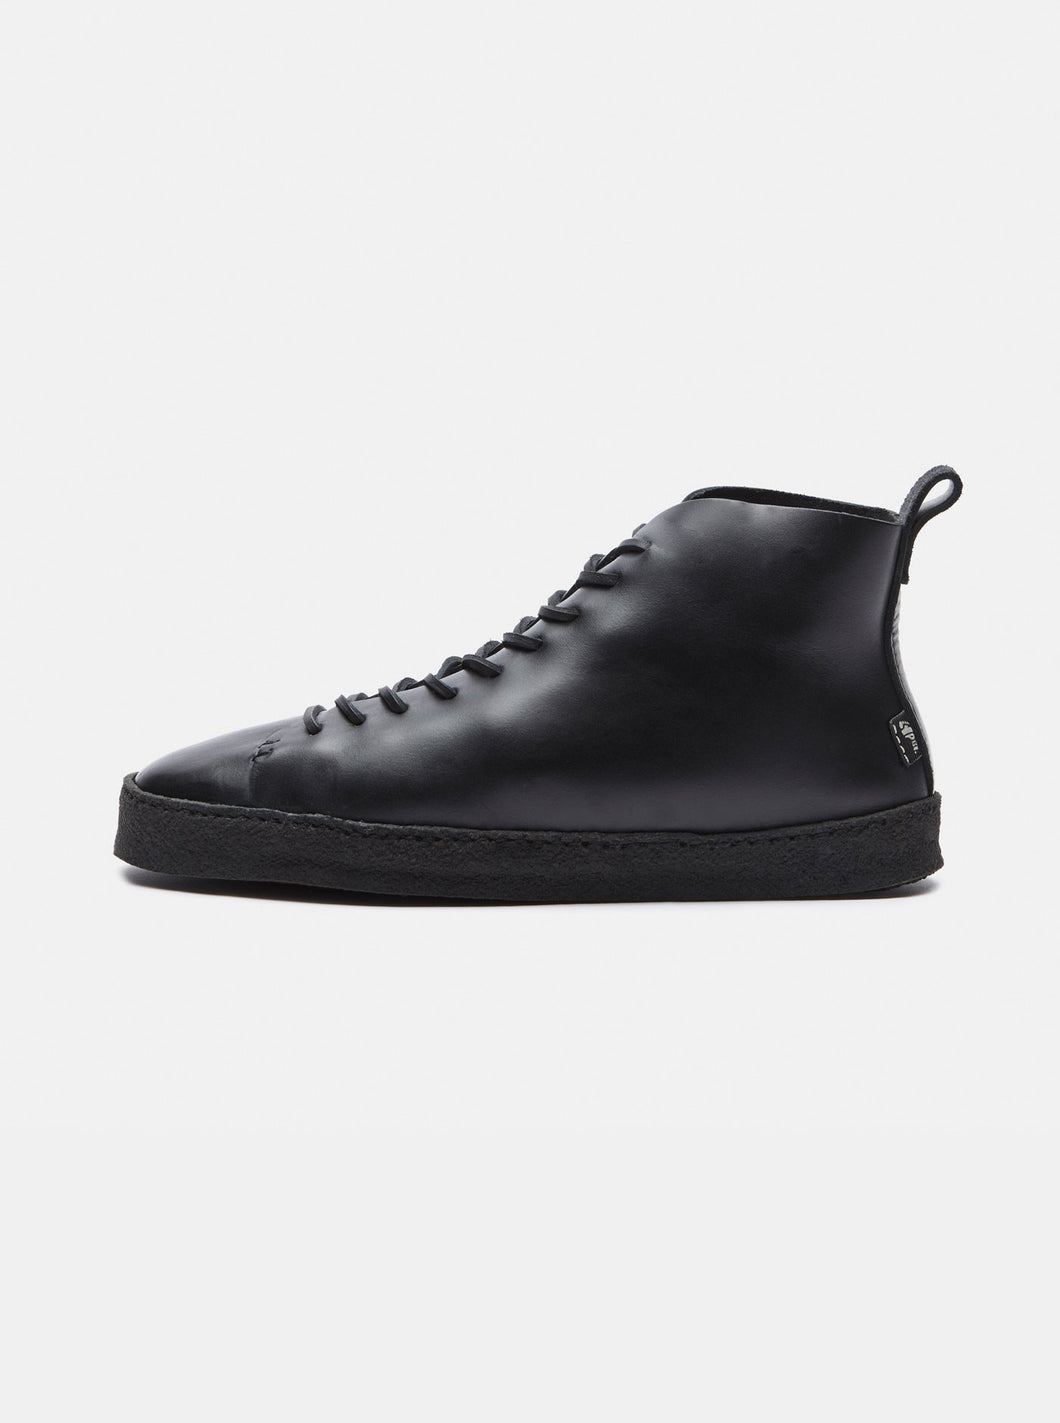 YOGI FOOTWEAR - Winstone Crepe Black Leather - Handcrafted in Portugal